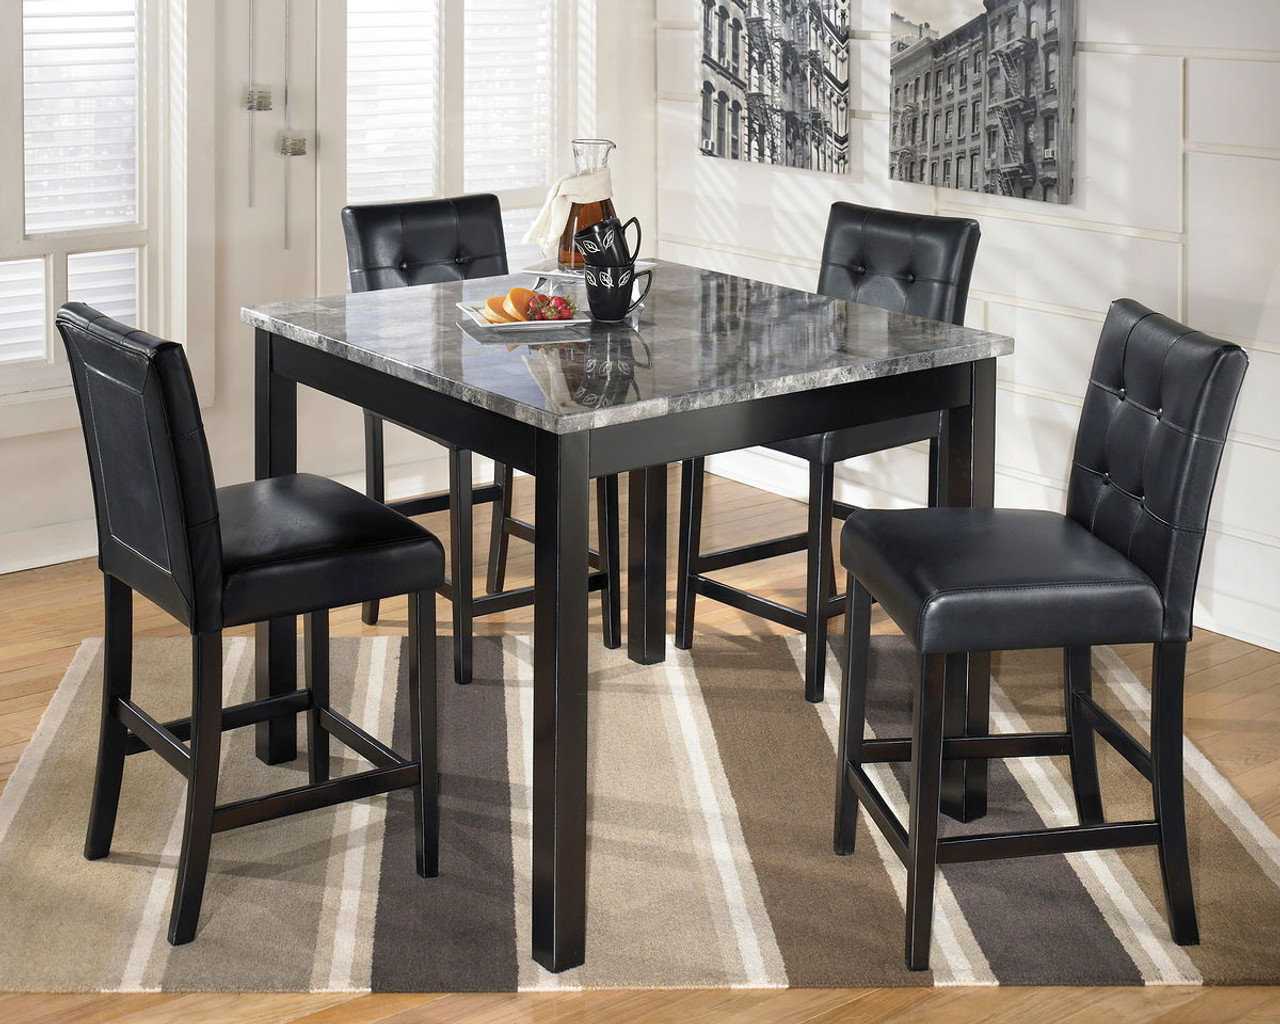 Brockton Counter Height Dining Set 5 Pc